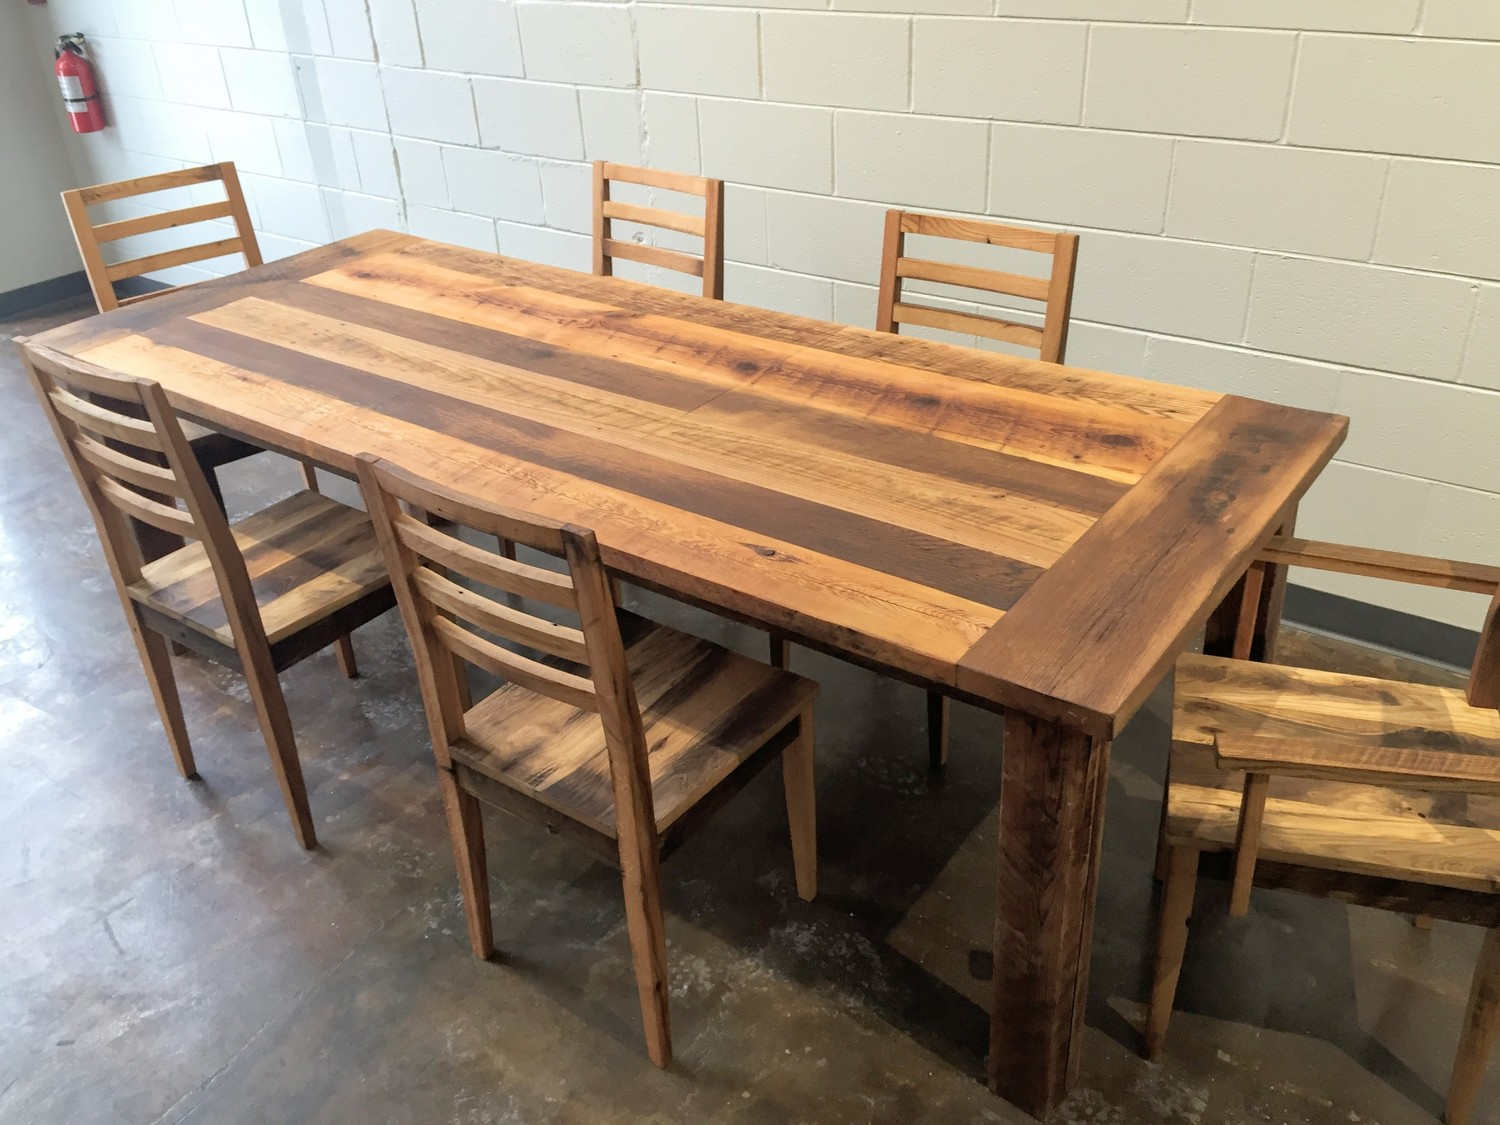 Reclaimed Wood Farmhouse Extendable Dining Table Smooth Finish What We Make